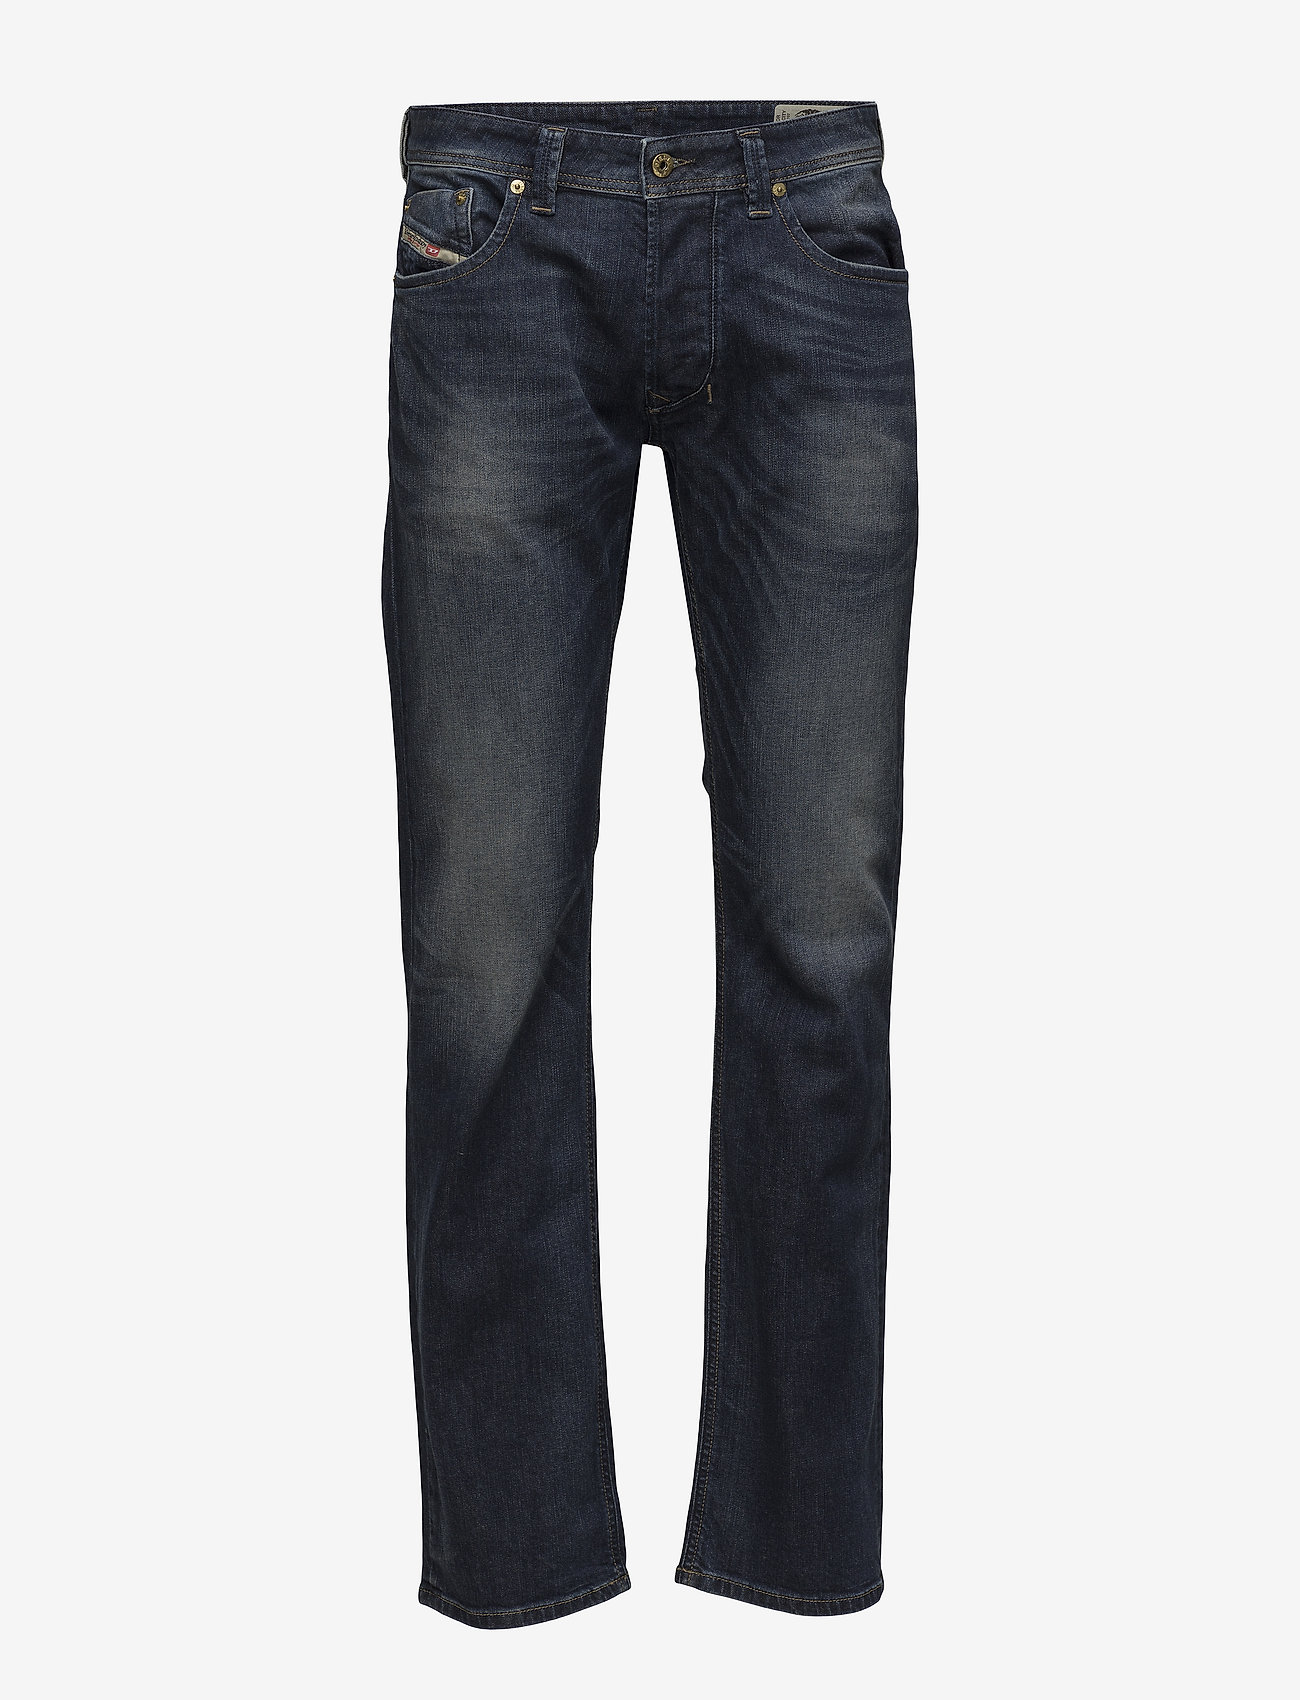 Diesel Men - LARKEE - regular jeans - denim - 0